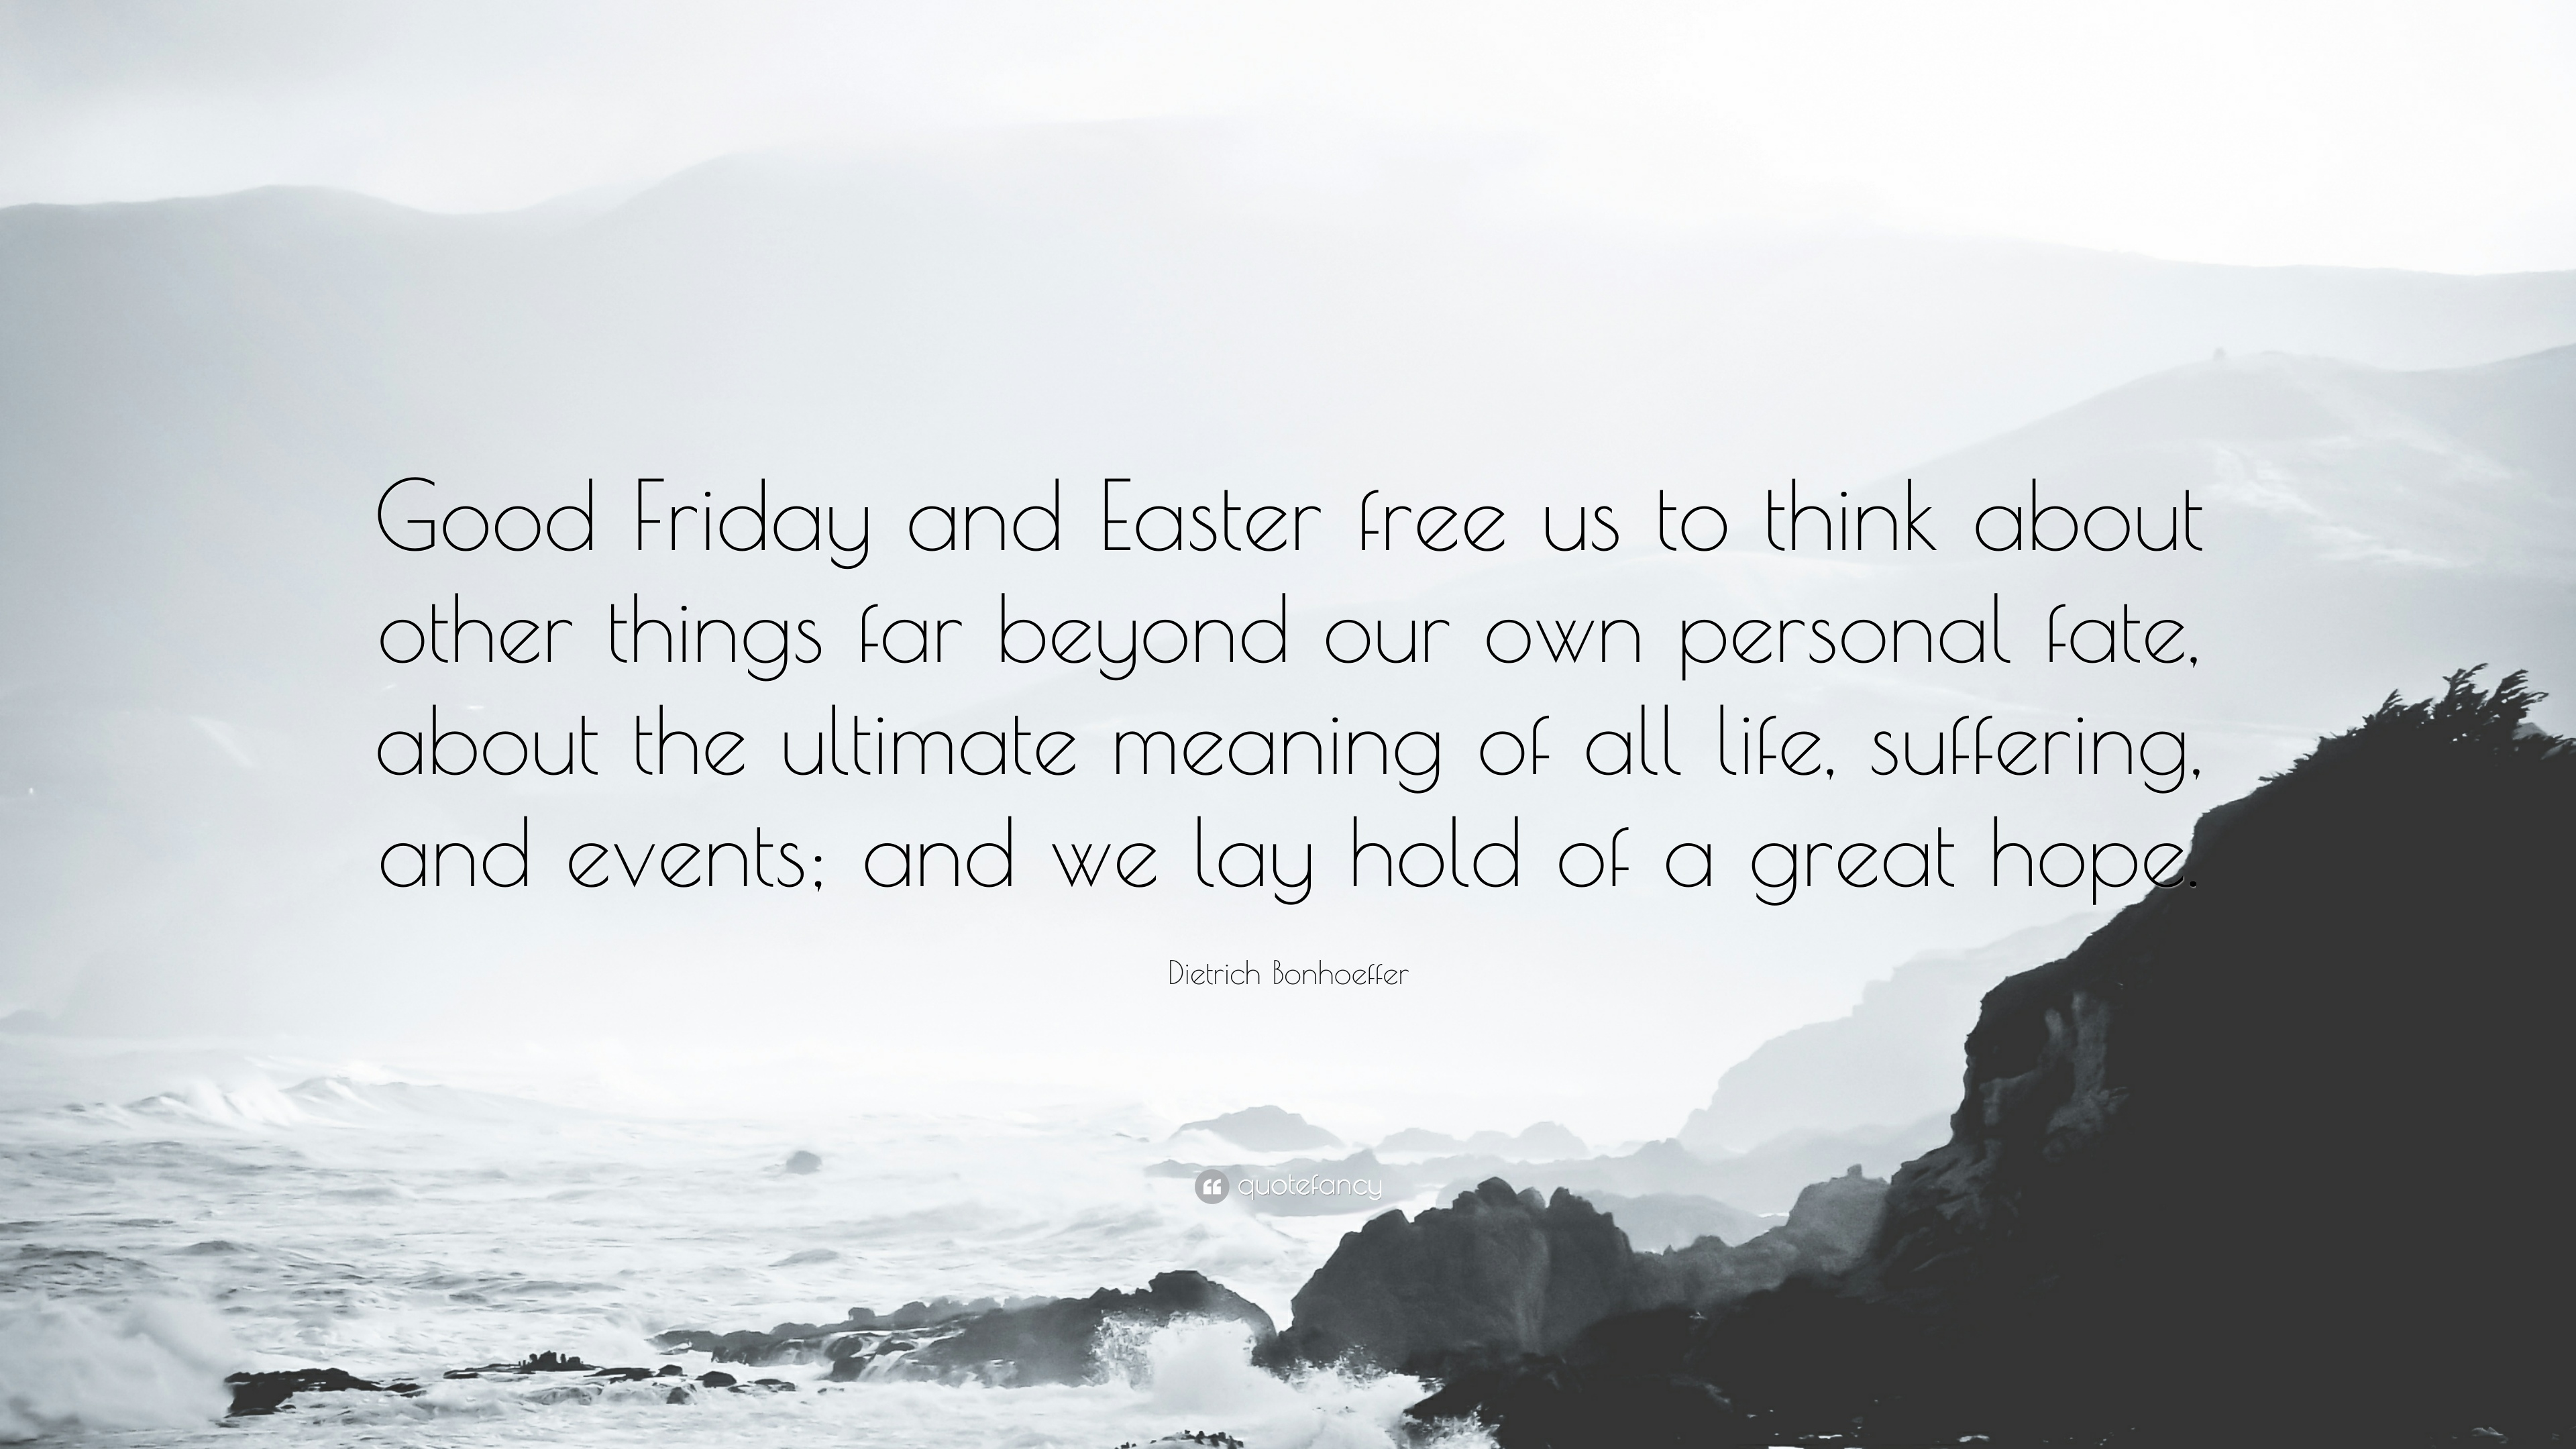 Dietrich bonhoeffer quote good friday and easter free us to think dietrich bonhoeffer quote good friday and easter free us to think about other things voltagebd Choice Image